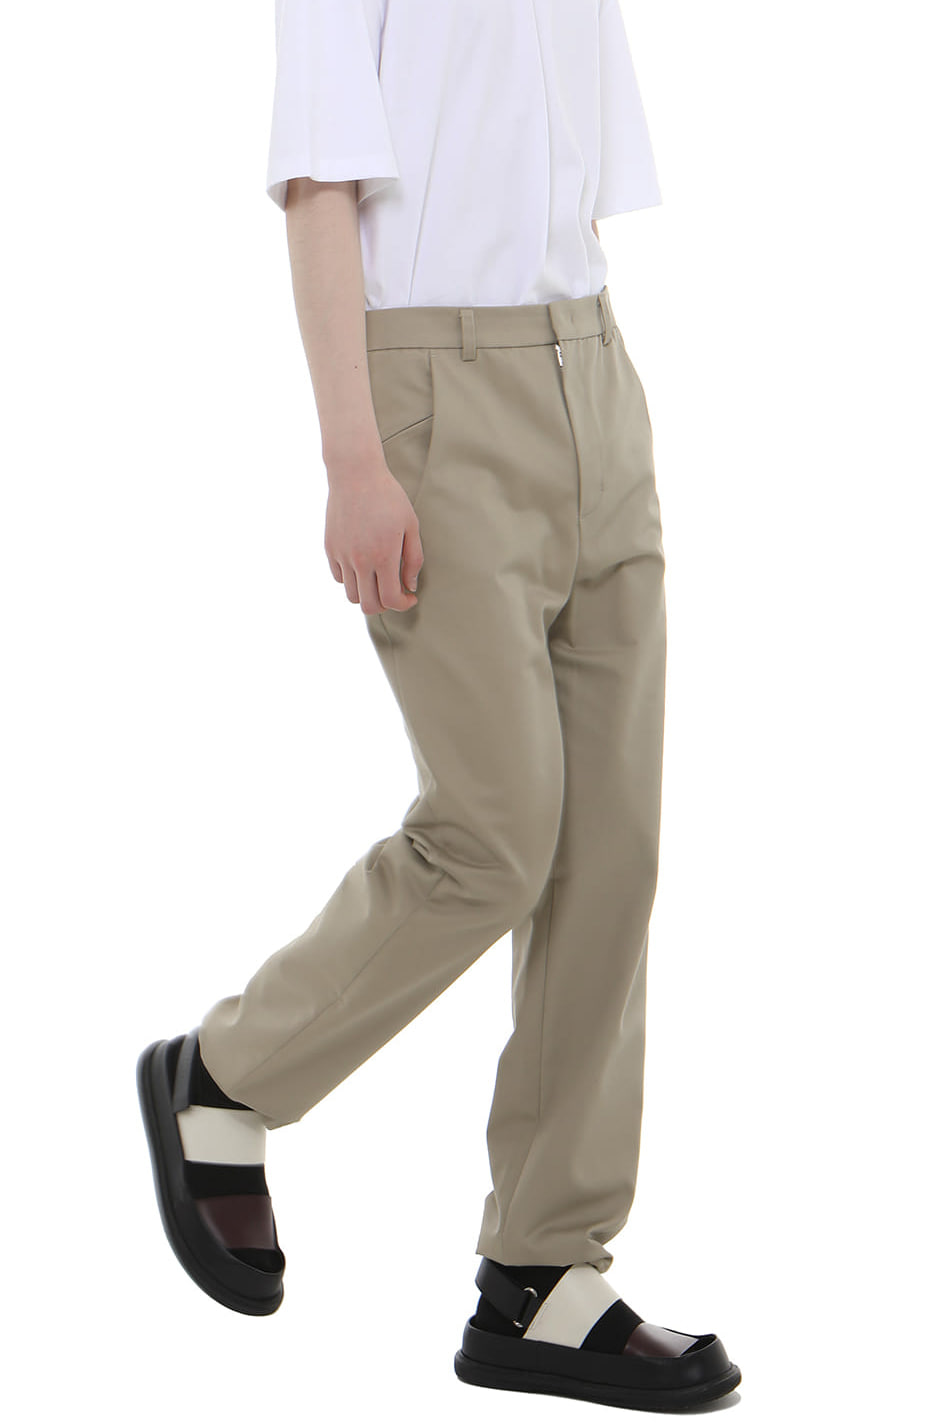 P010 / Strap Cotton Beige Pants